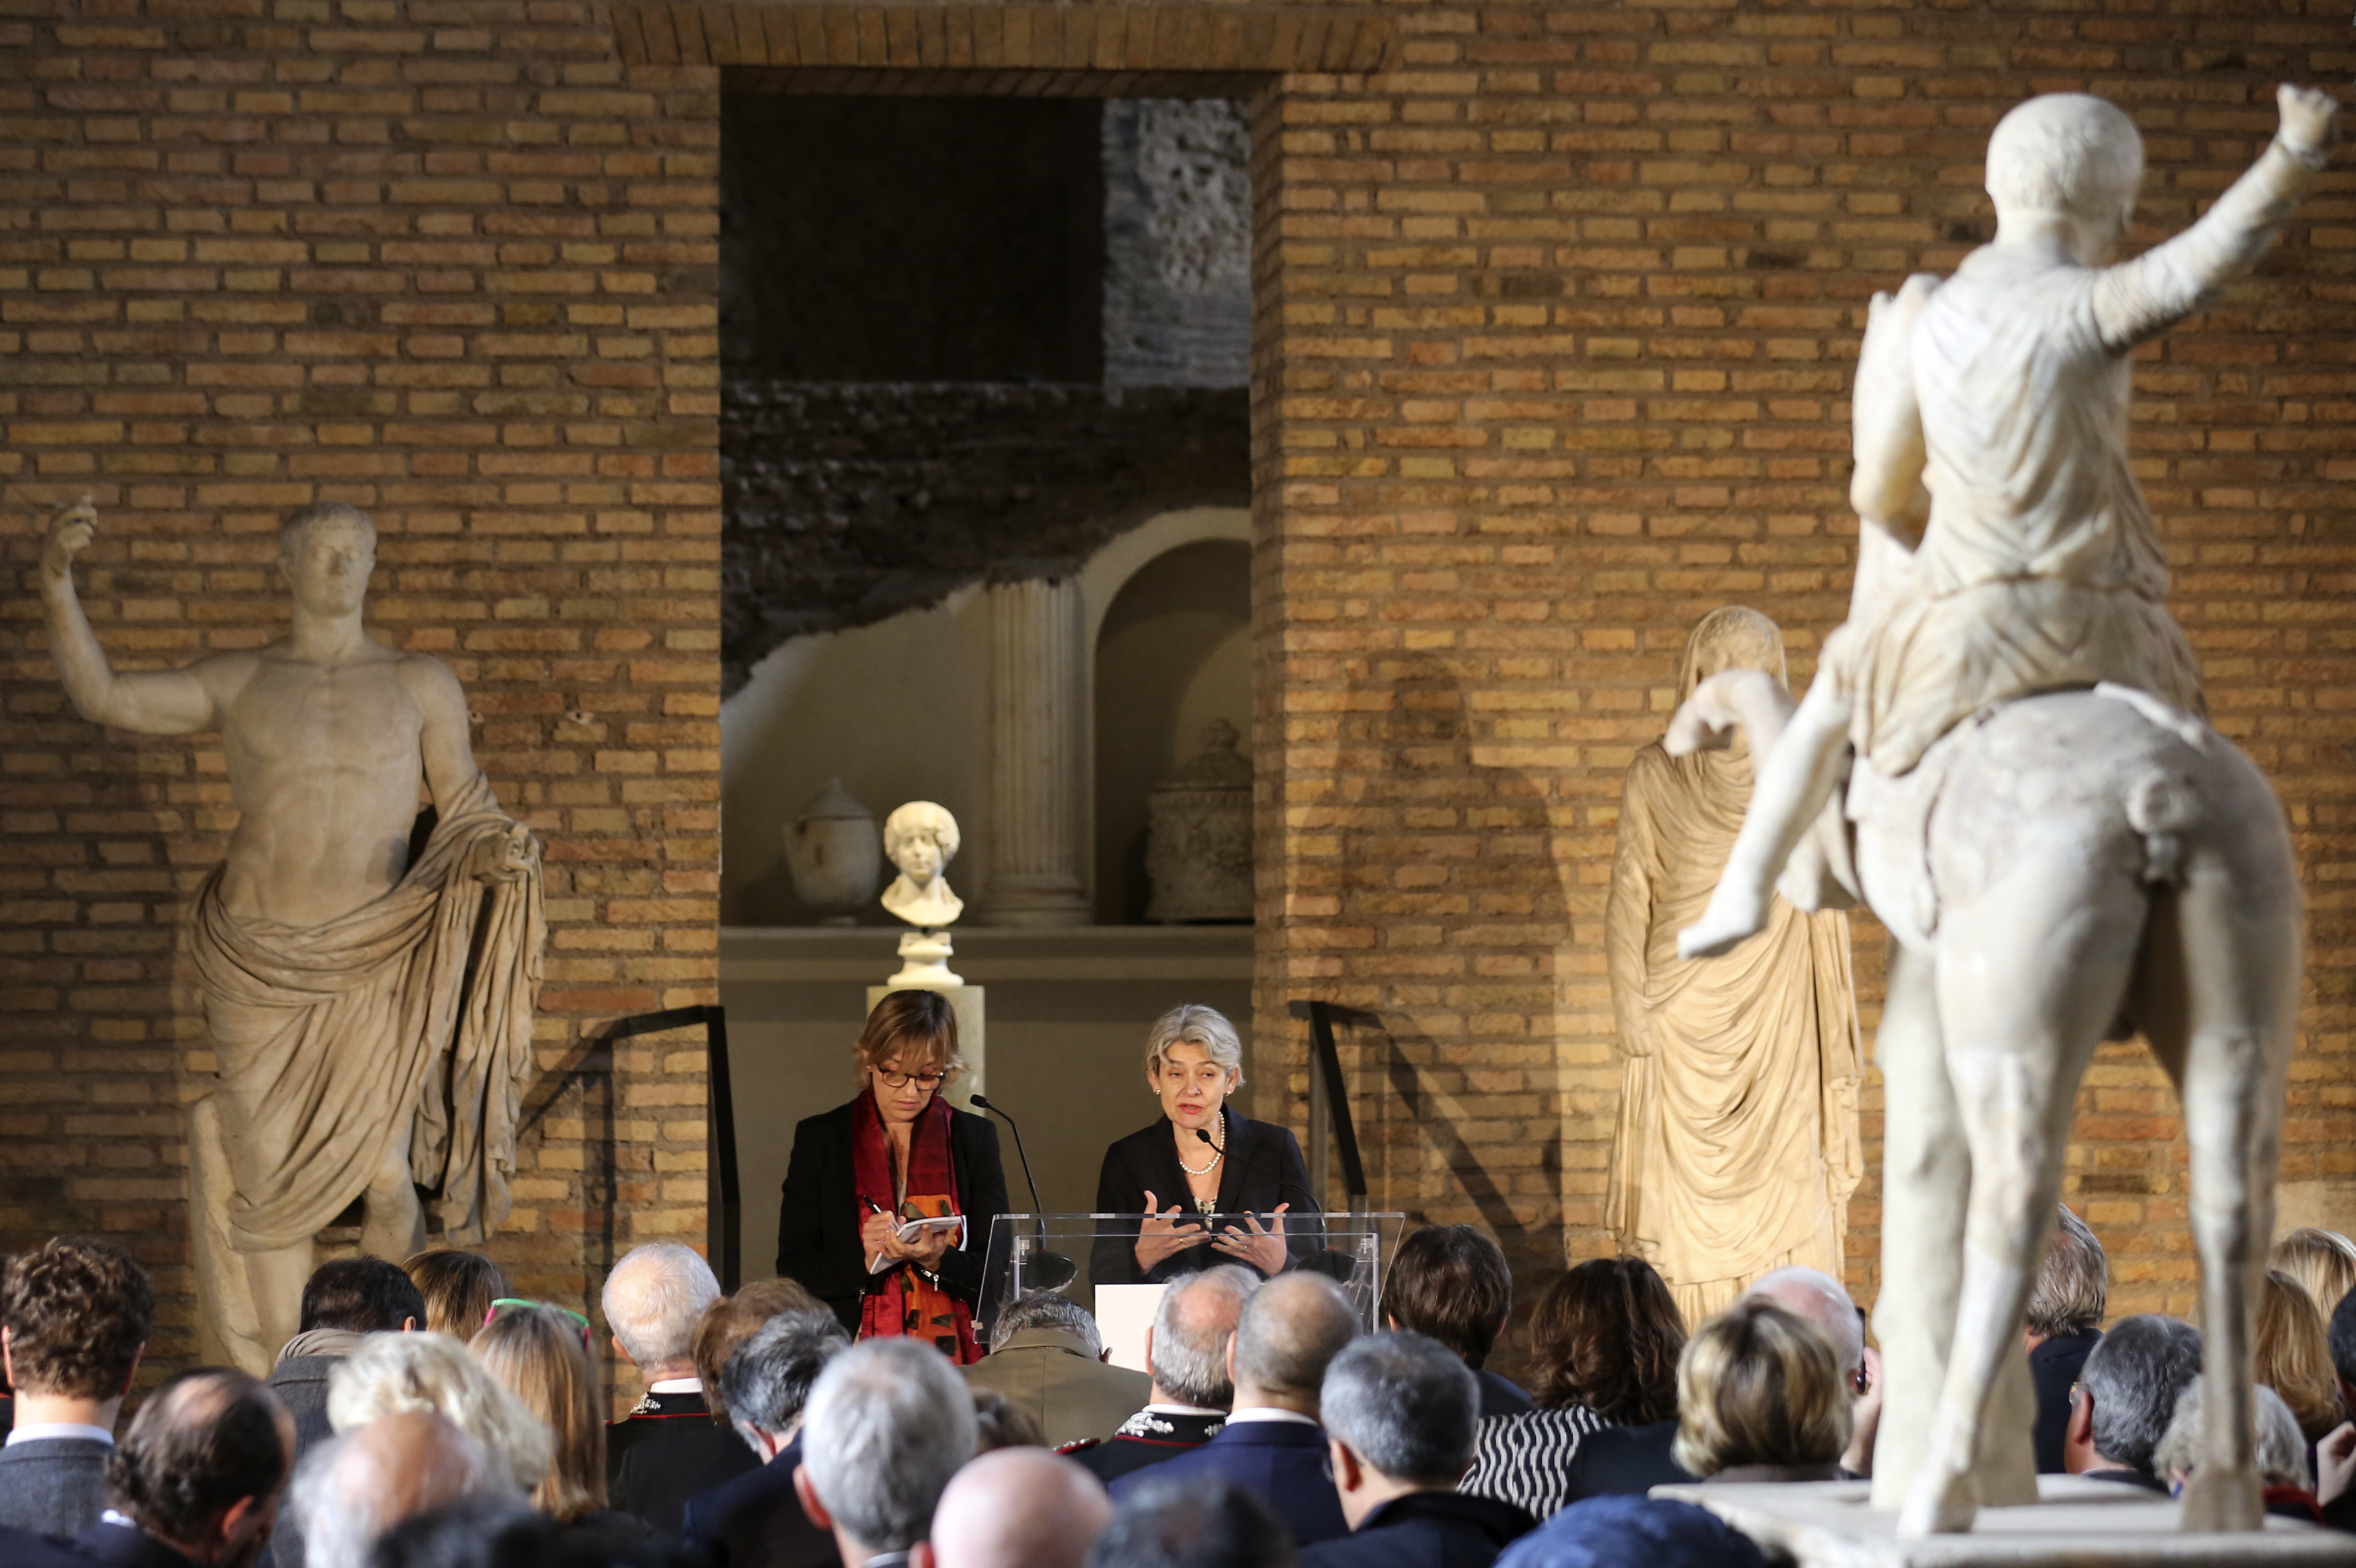 Irina Bokova at the presentation of the Unite for Heritage operation, a UN-backed task force to protect monuments and cultural sites. Image: REUTERS/Stefano Rellandini